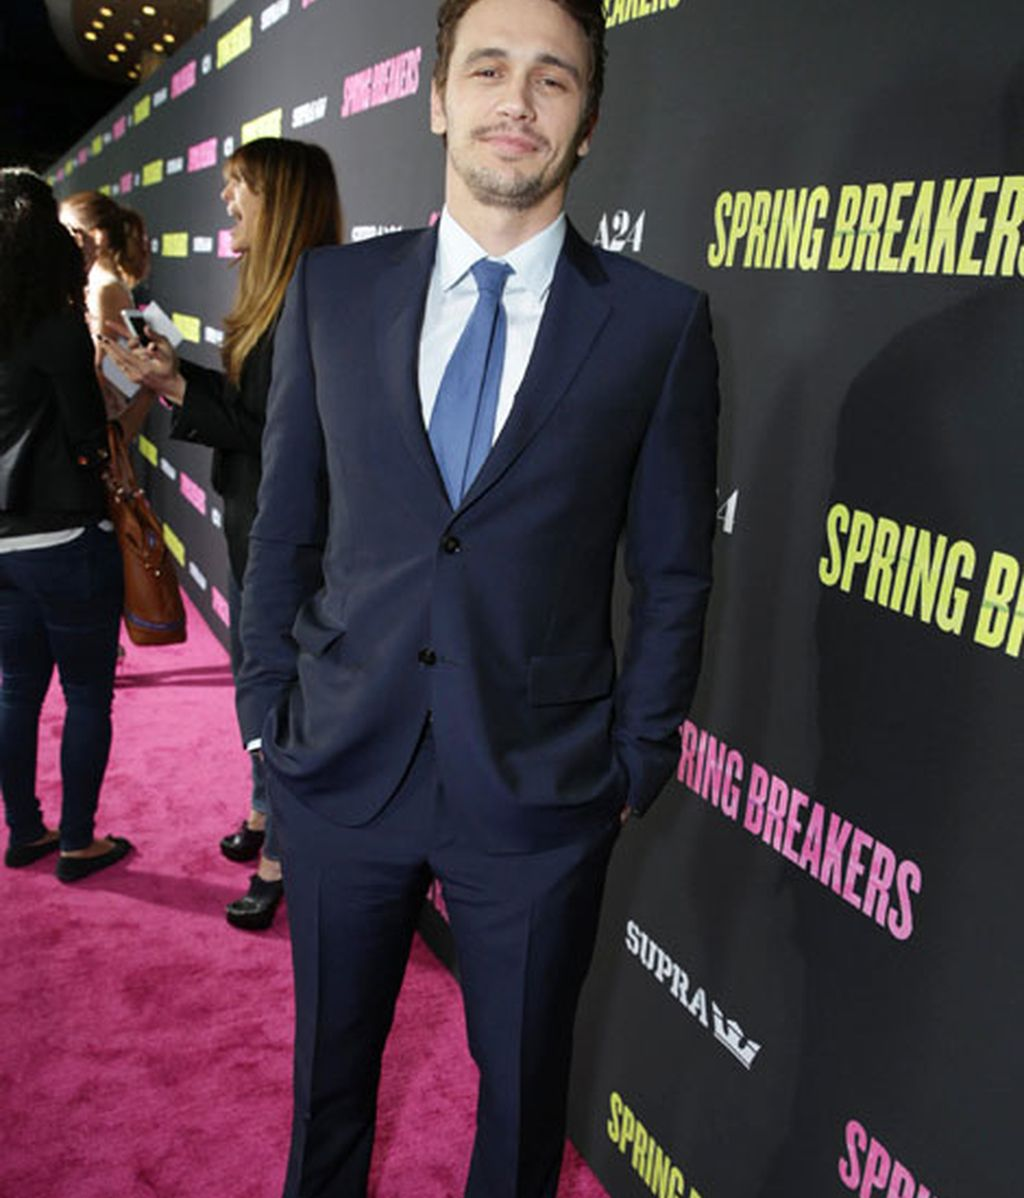 James Franco, traficante de drogas en 'Spring Breakers'